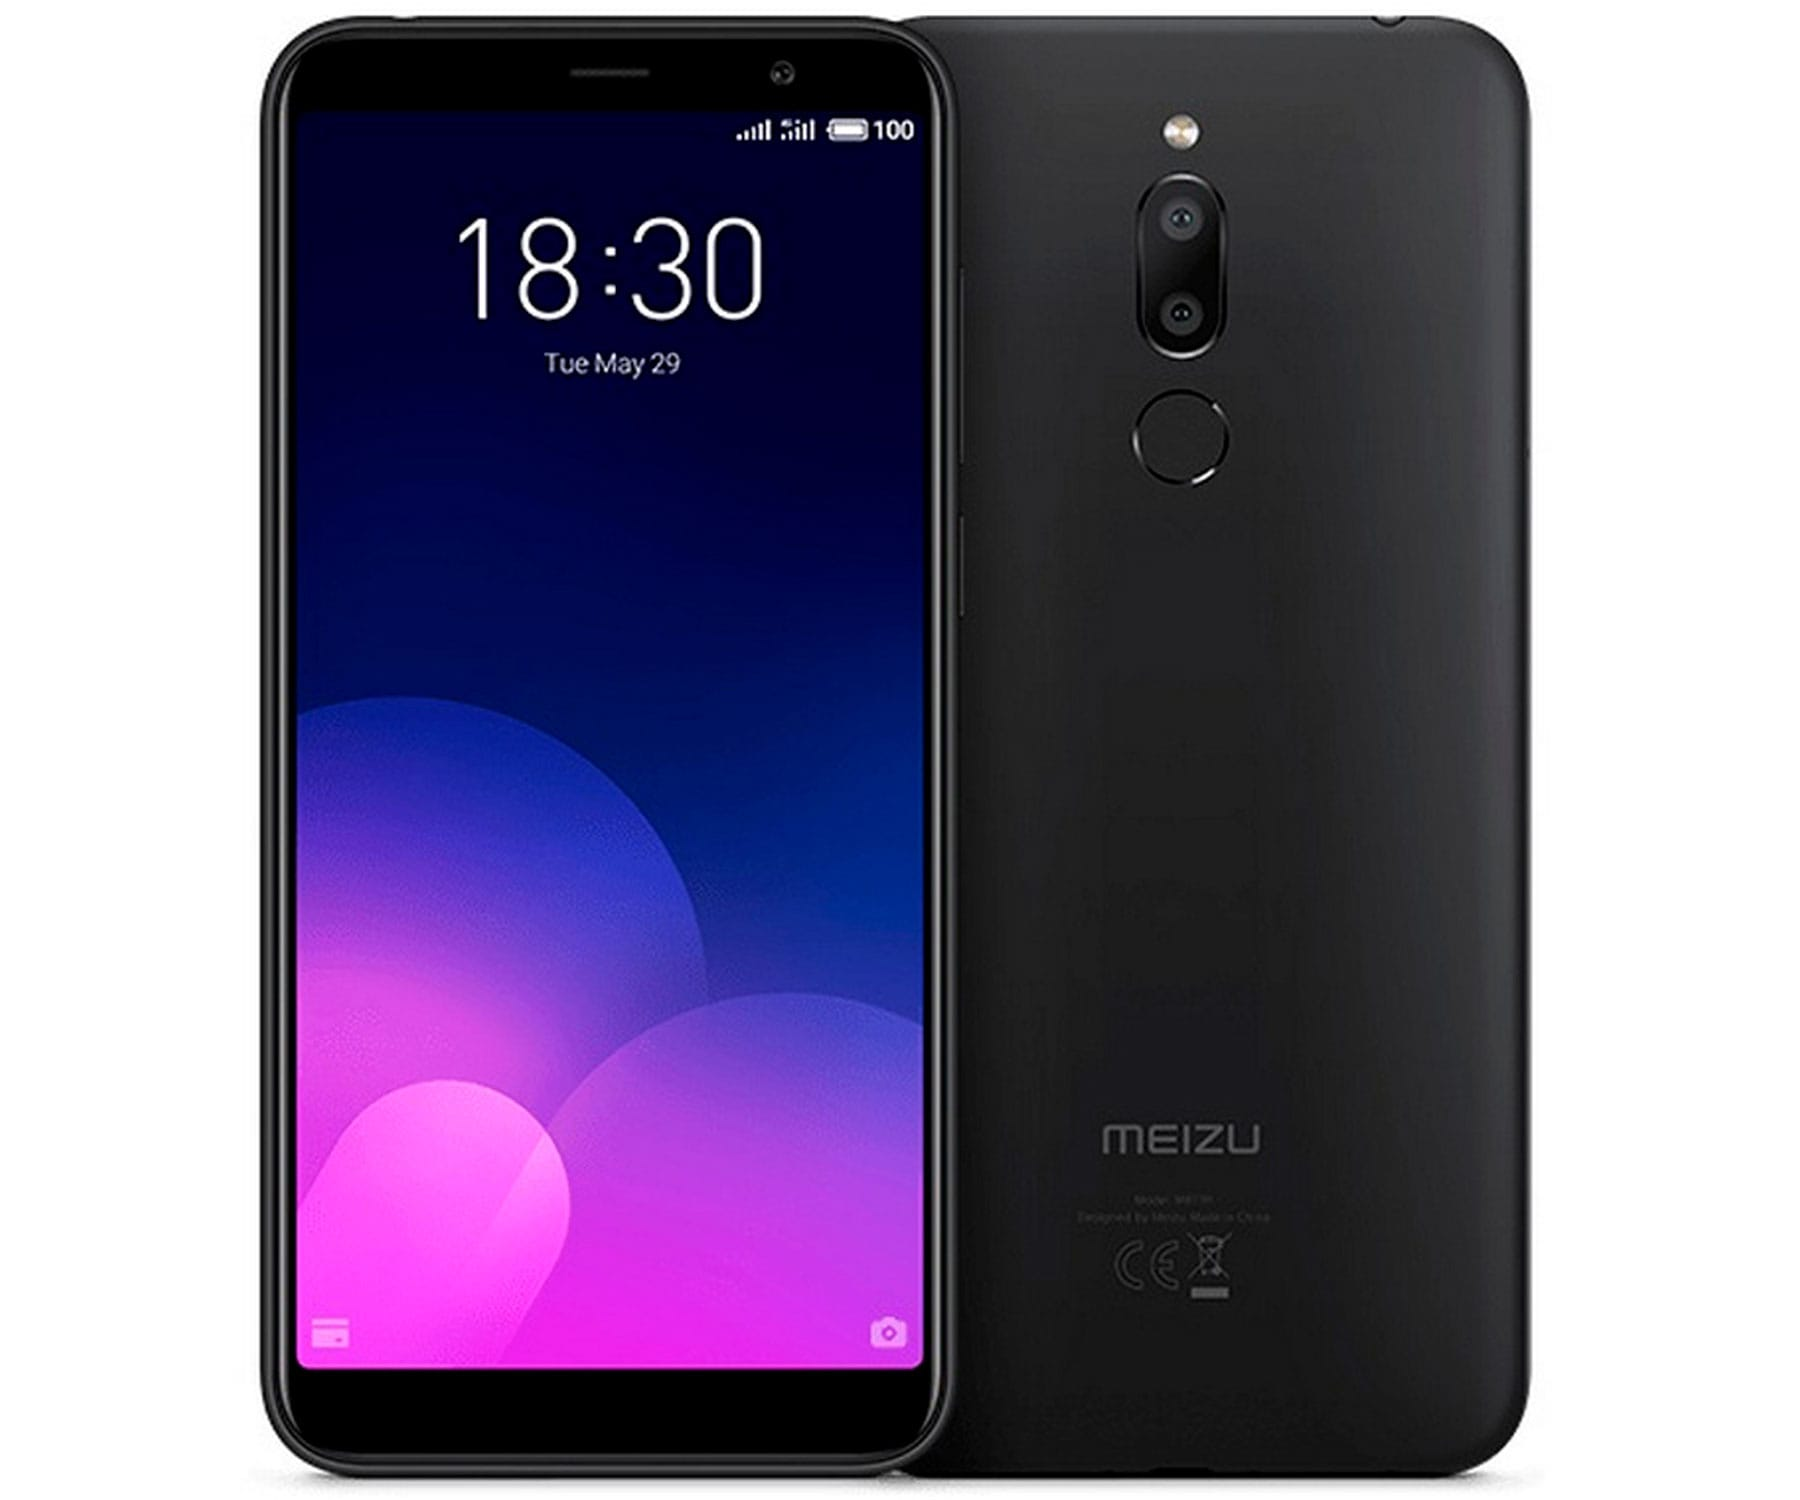 MEIZU M6T NEGRO MÓVIL 4G DUAL SIM 5.7'' IPS HD+ OCTACORE 16GB 2GB RAM DUALCAM 13MP SELFIES 8MP